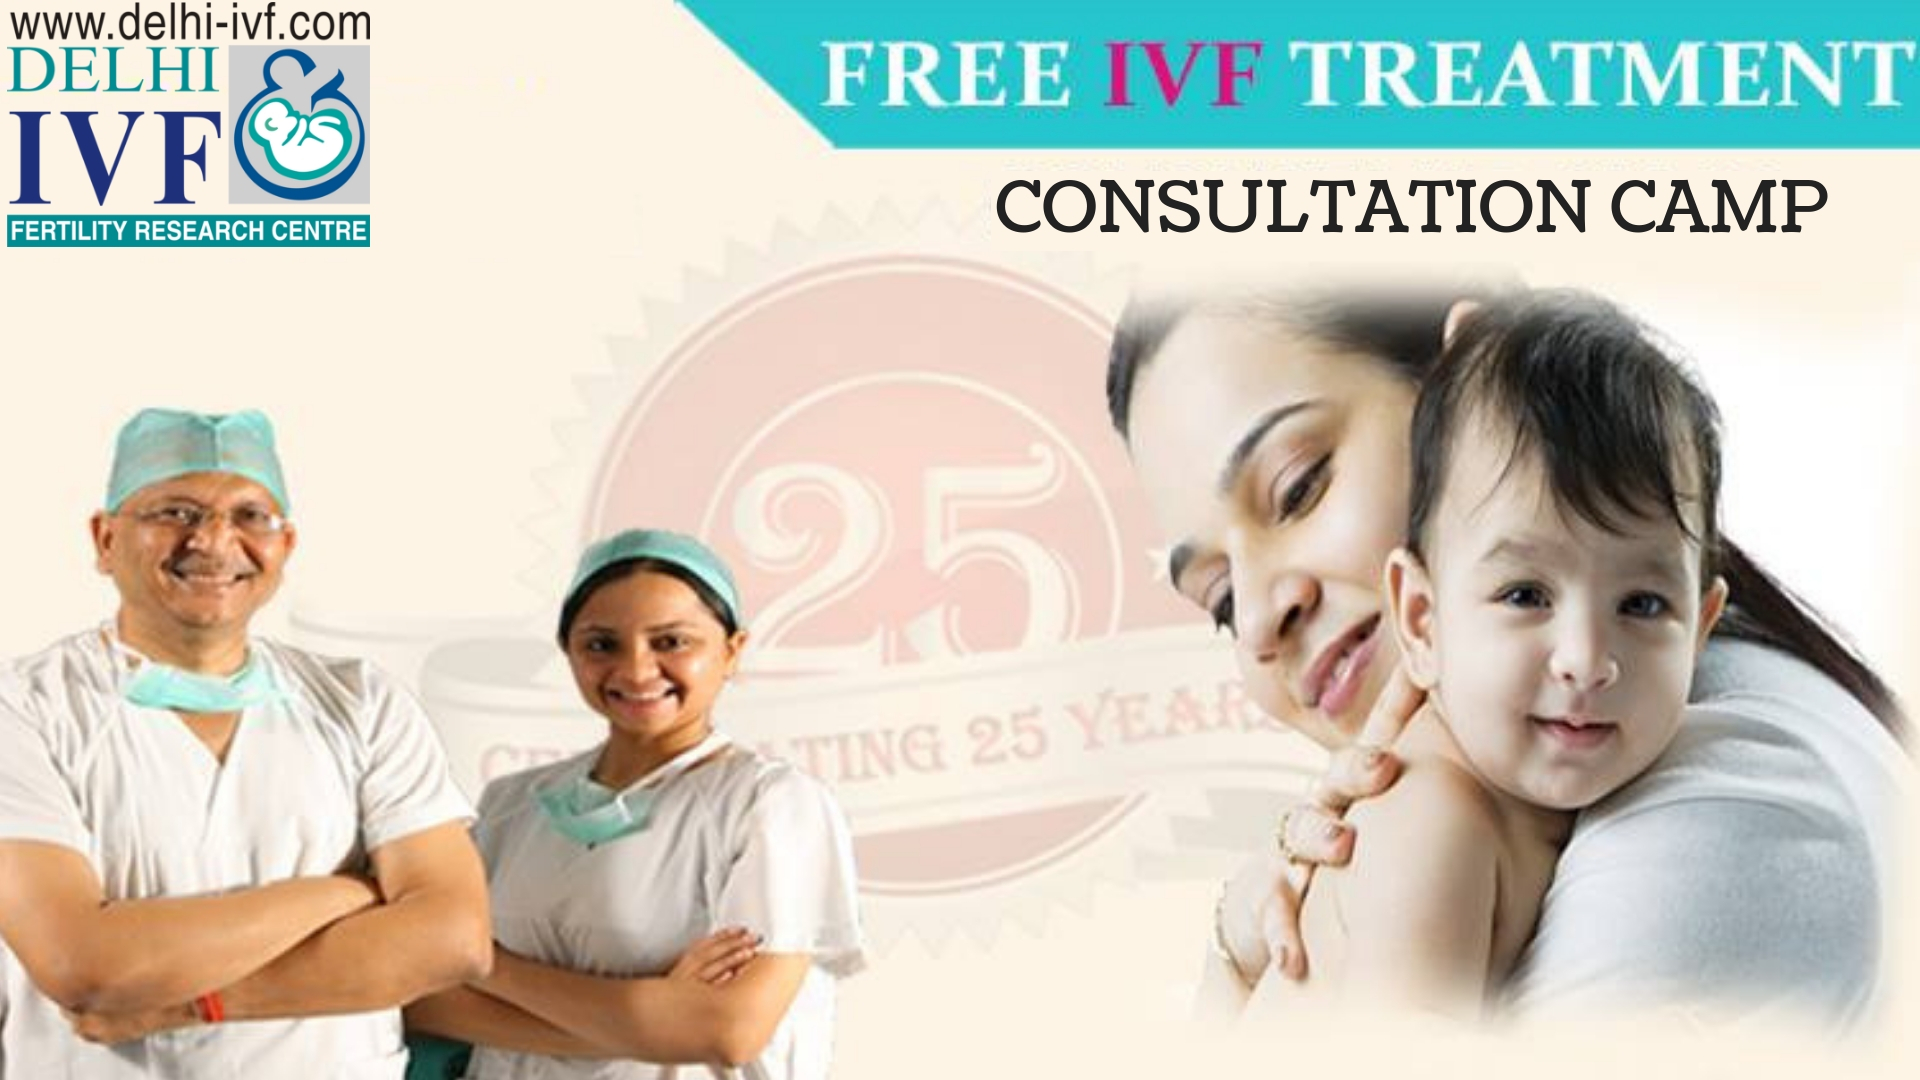 Free IVF Treatment Consultation Camp in Delhi